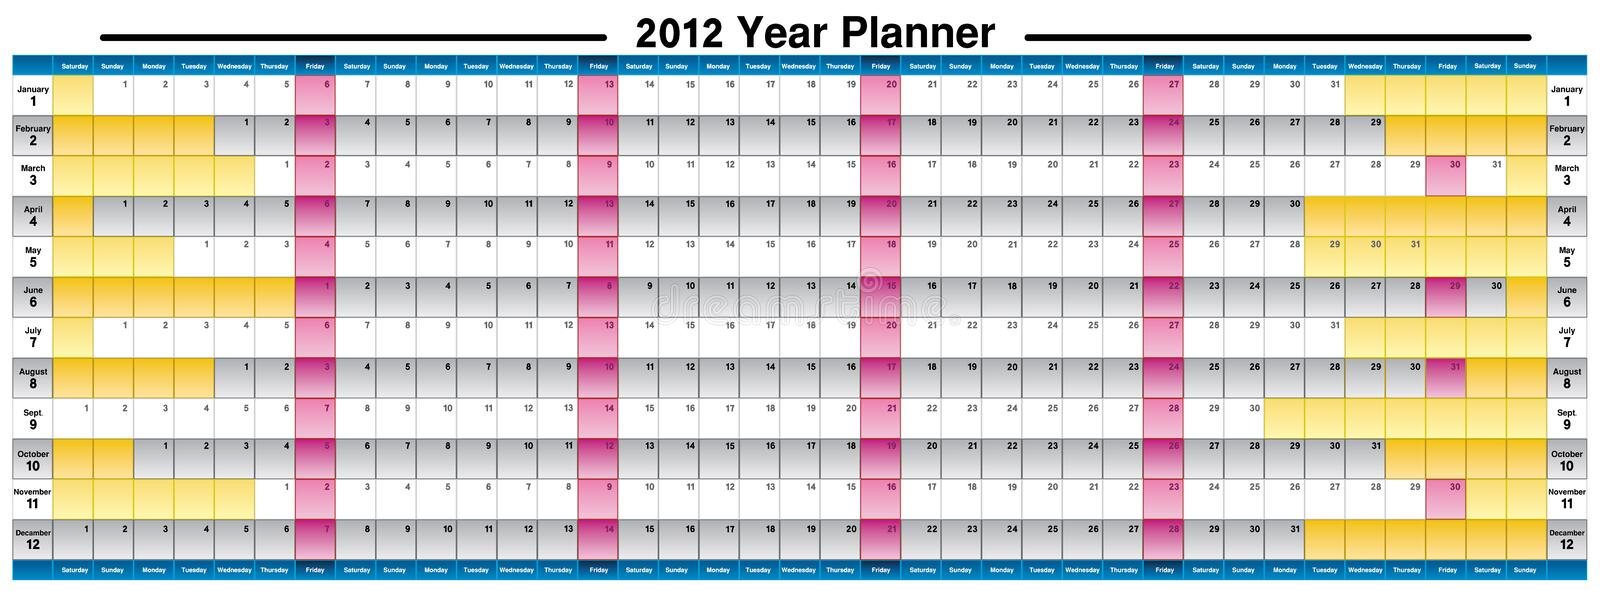 Download New Year 2012 Year Planner Royalty Free Stock Image - Image: 22138156